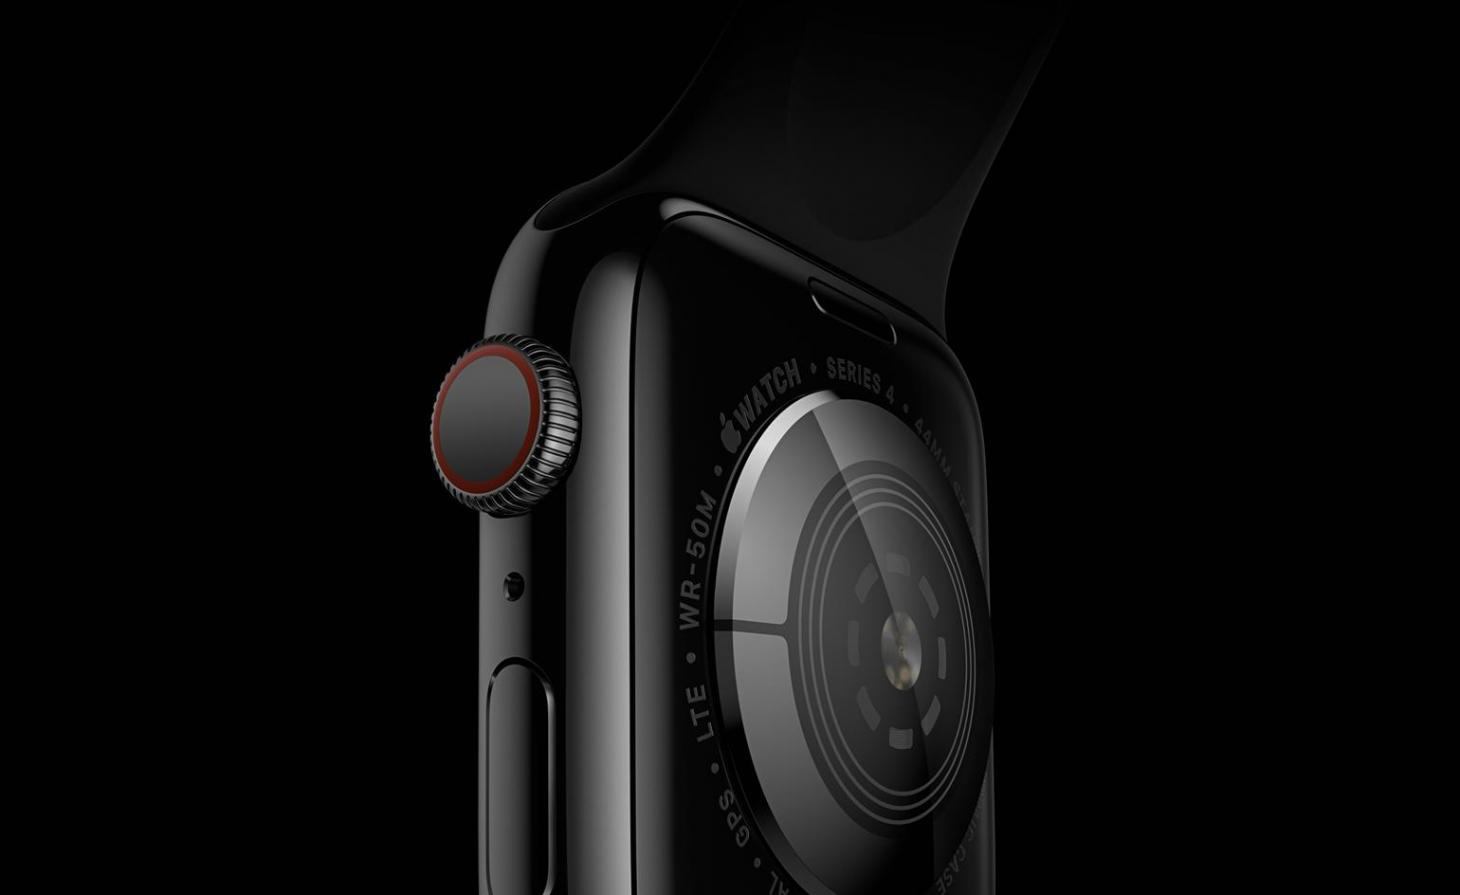 Apple Watch Series 4: the Jony Ive interview wallpapers